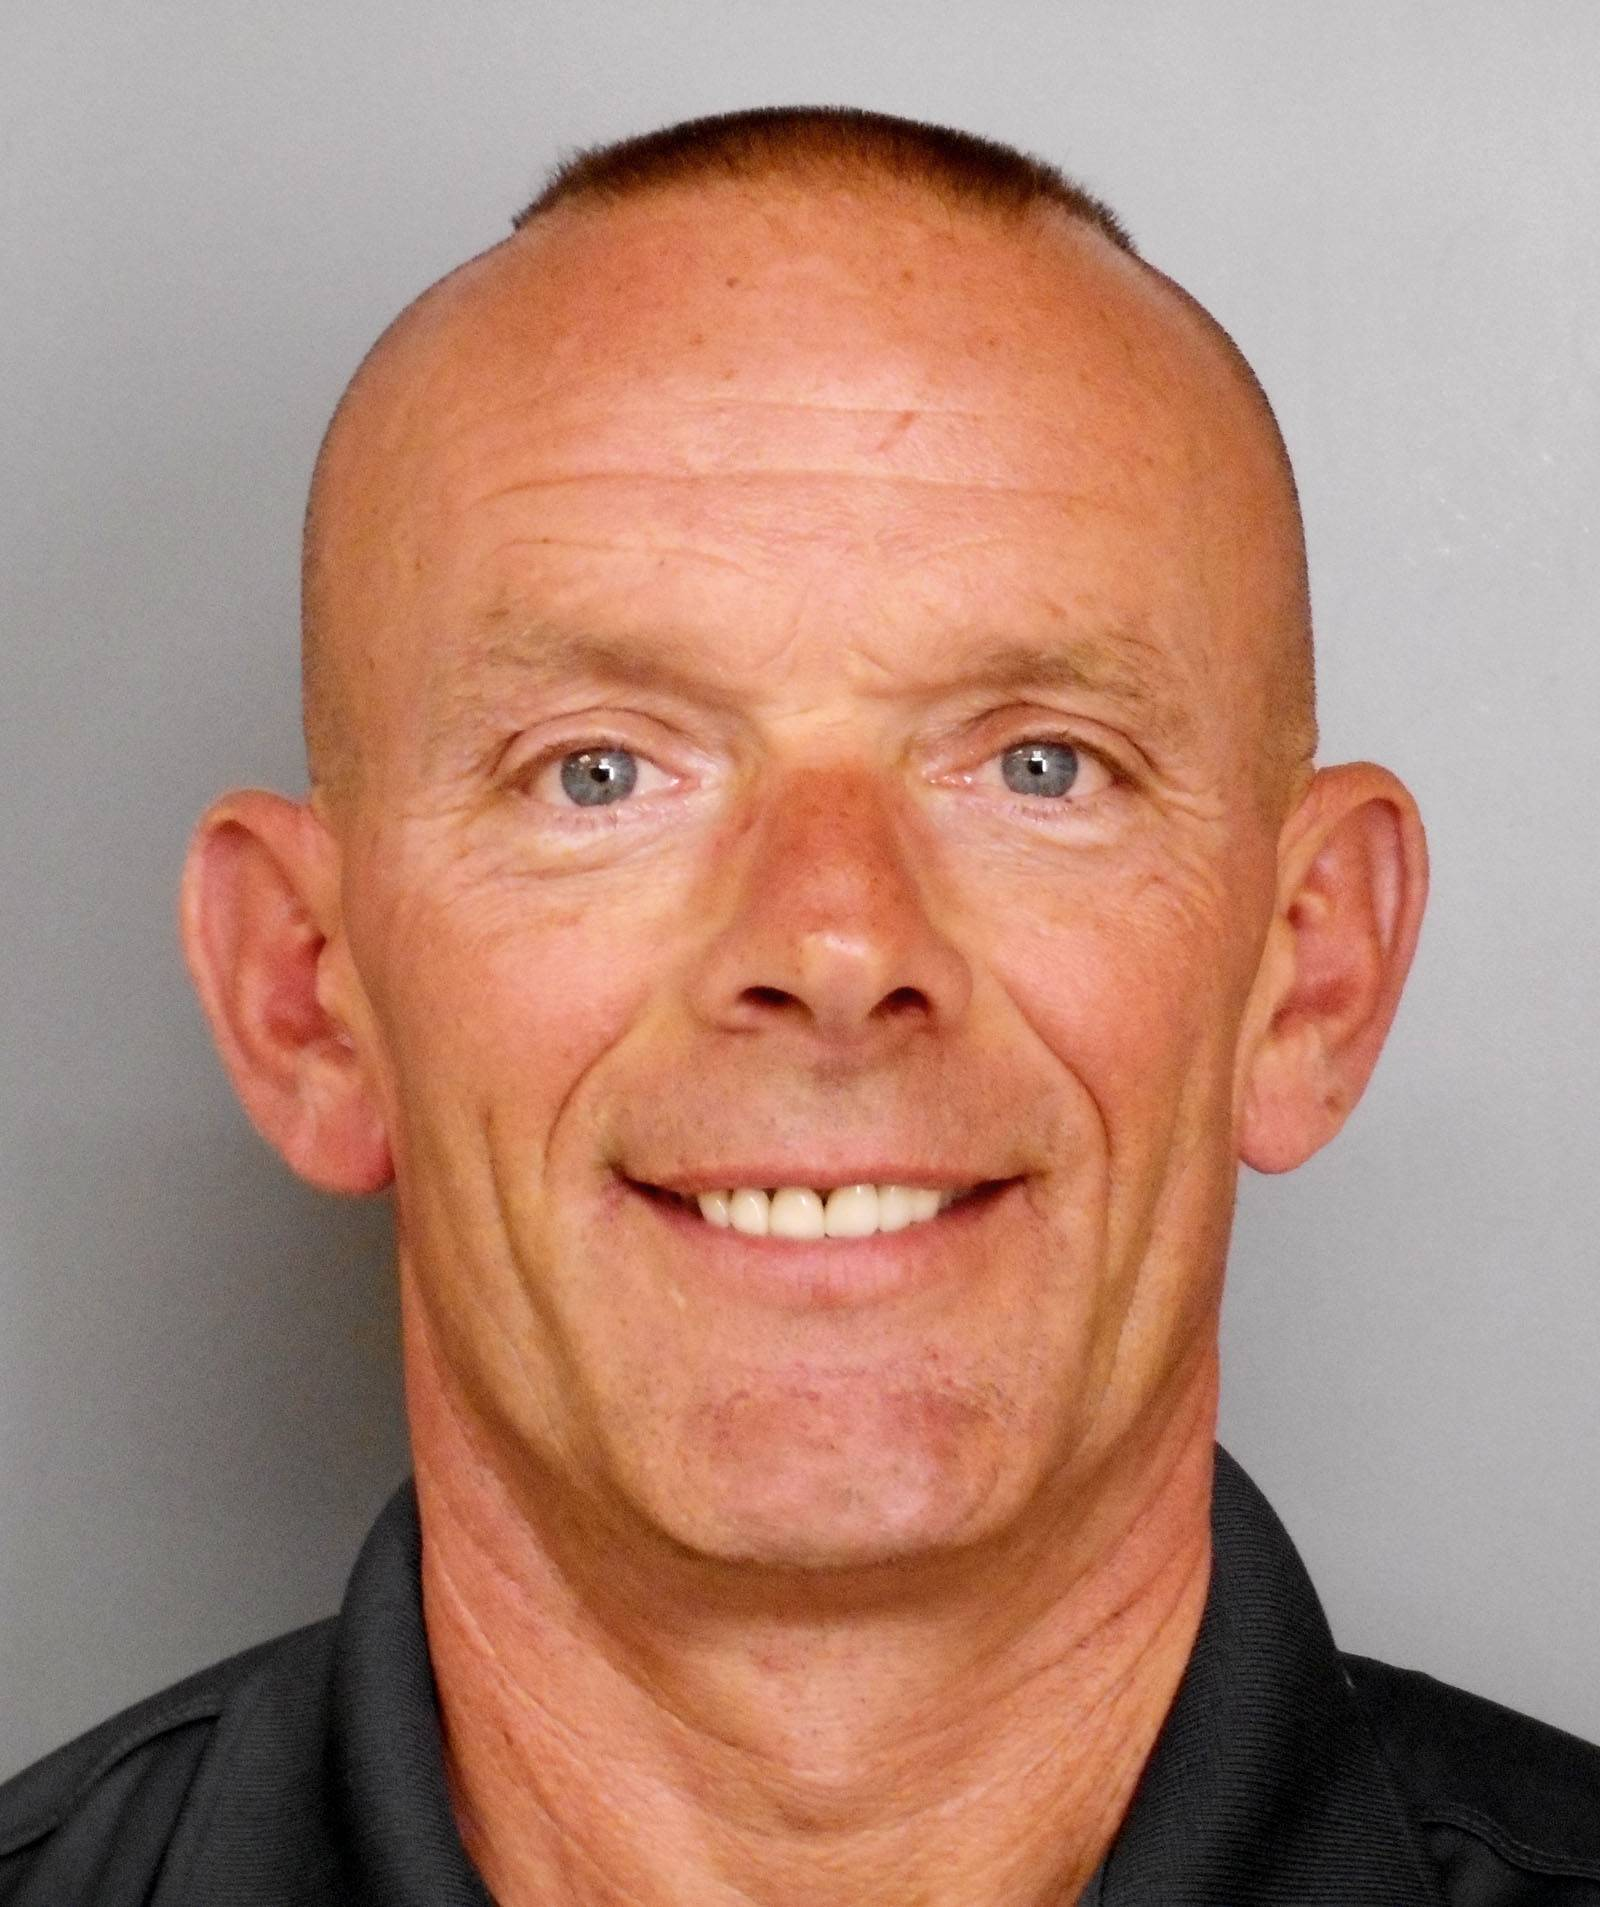 K-9 tracks gunshot residue a quarter-mile from Gliniewicz shooting scene